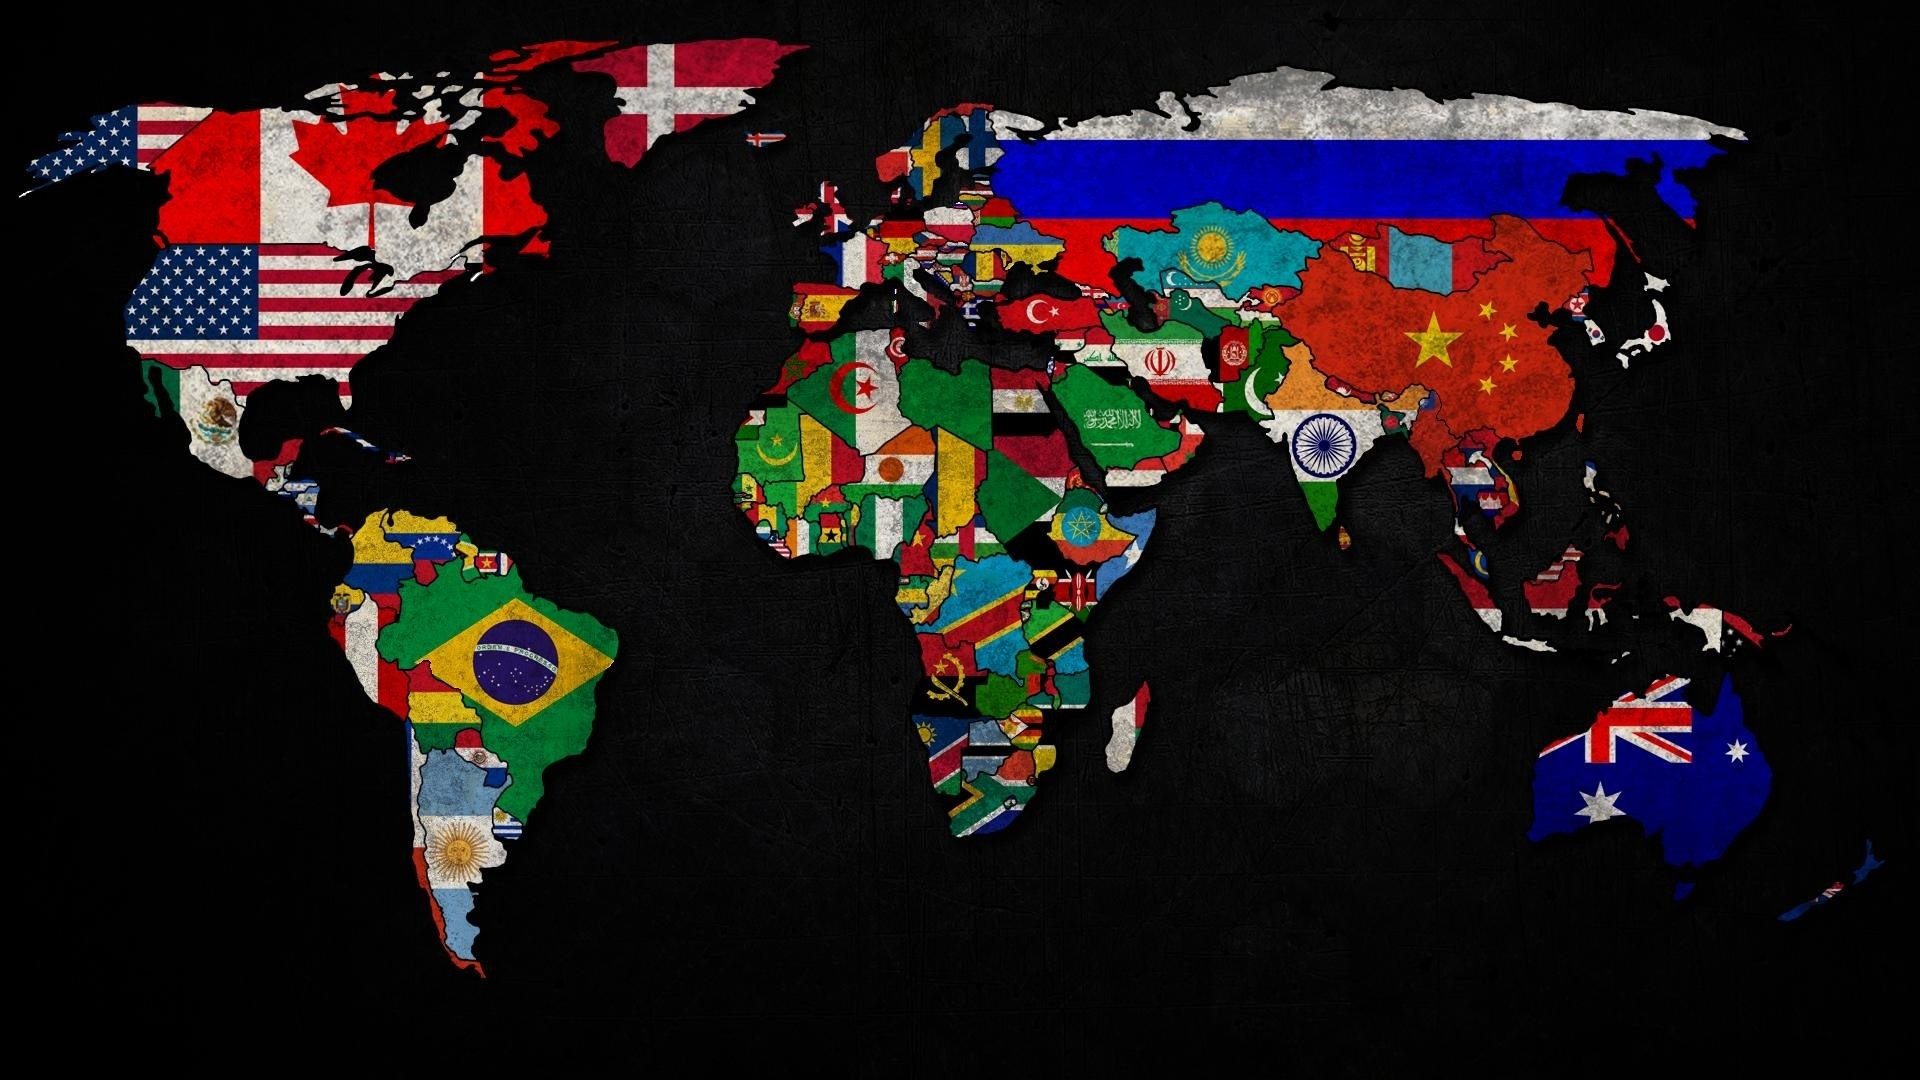 Wallpaper of world map 62 images 1920x1080 hd wallpaper background id400645 1920x1080 misc world map gumiabroncs Images